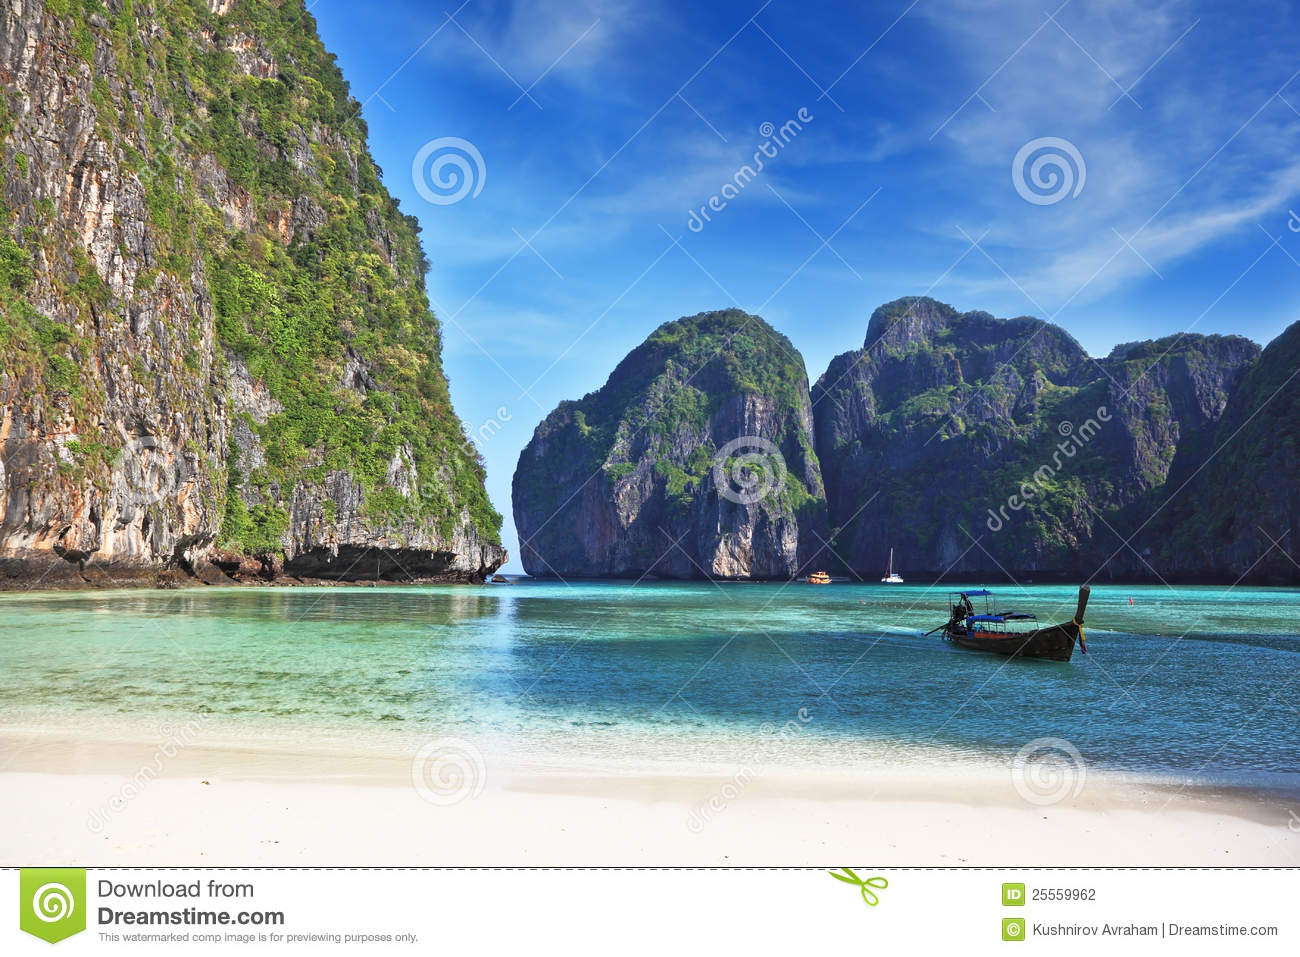 Cove Off The Coast Of Thailand  Emerald Water Lapping At The Cliffs